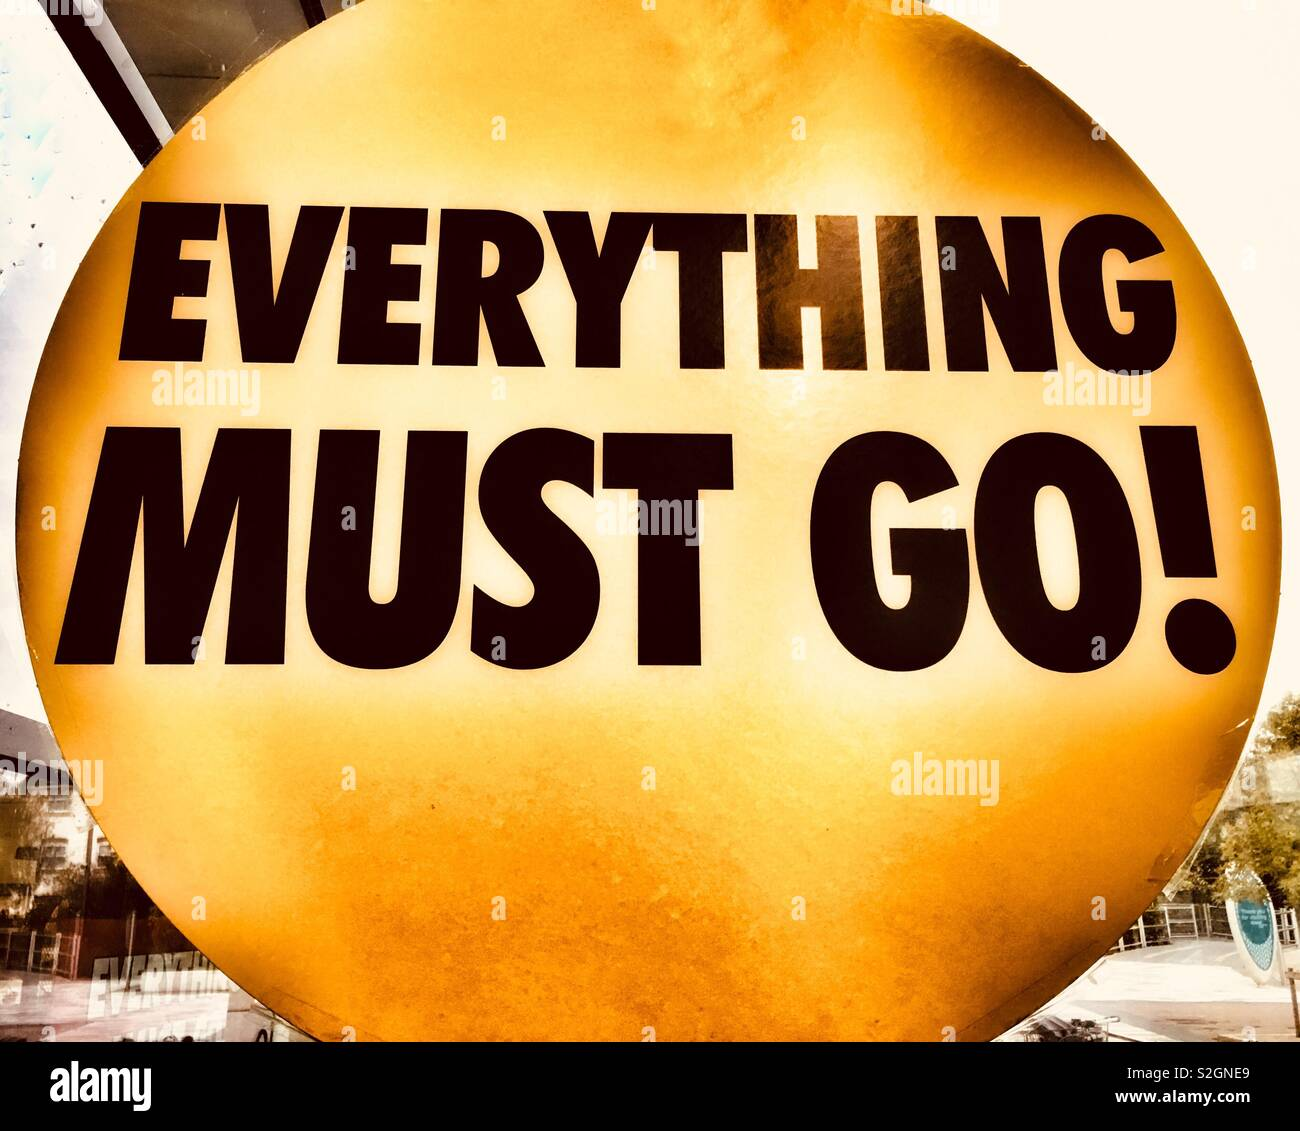 Digitally altered 'Everything must go!' Poster in a shop window. Metaphor. Concept: All things must pass Stock Photo